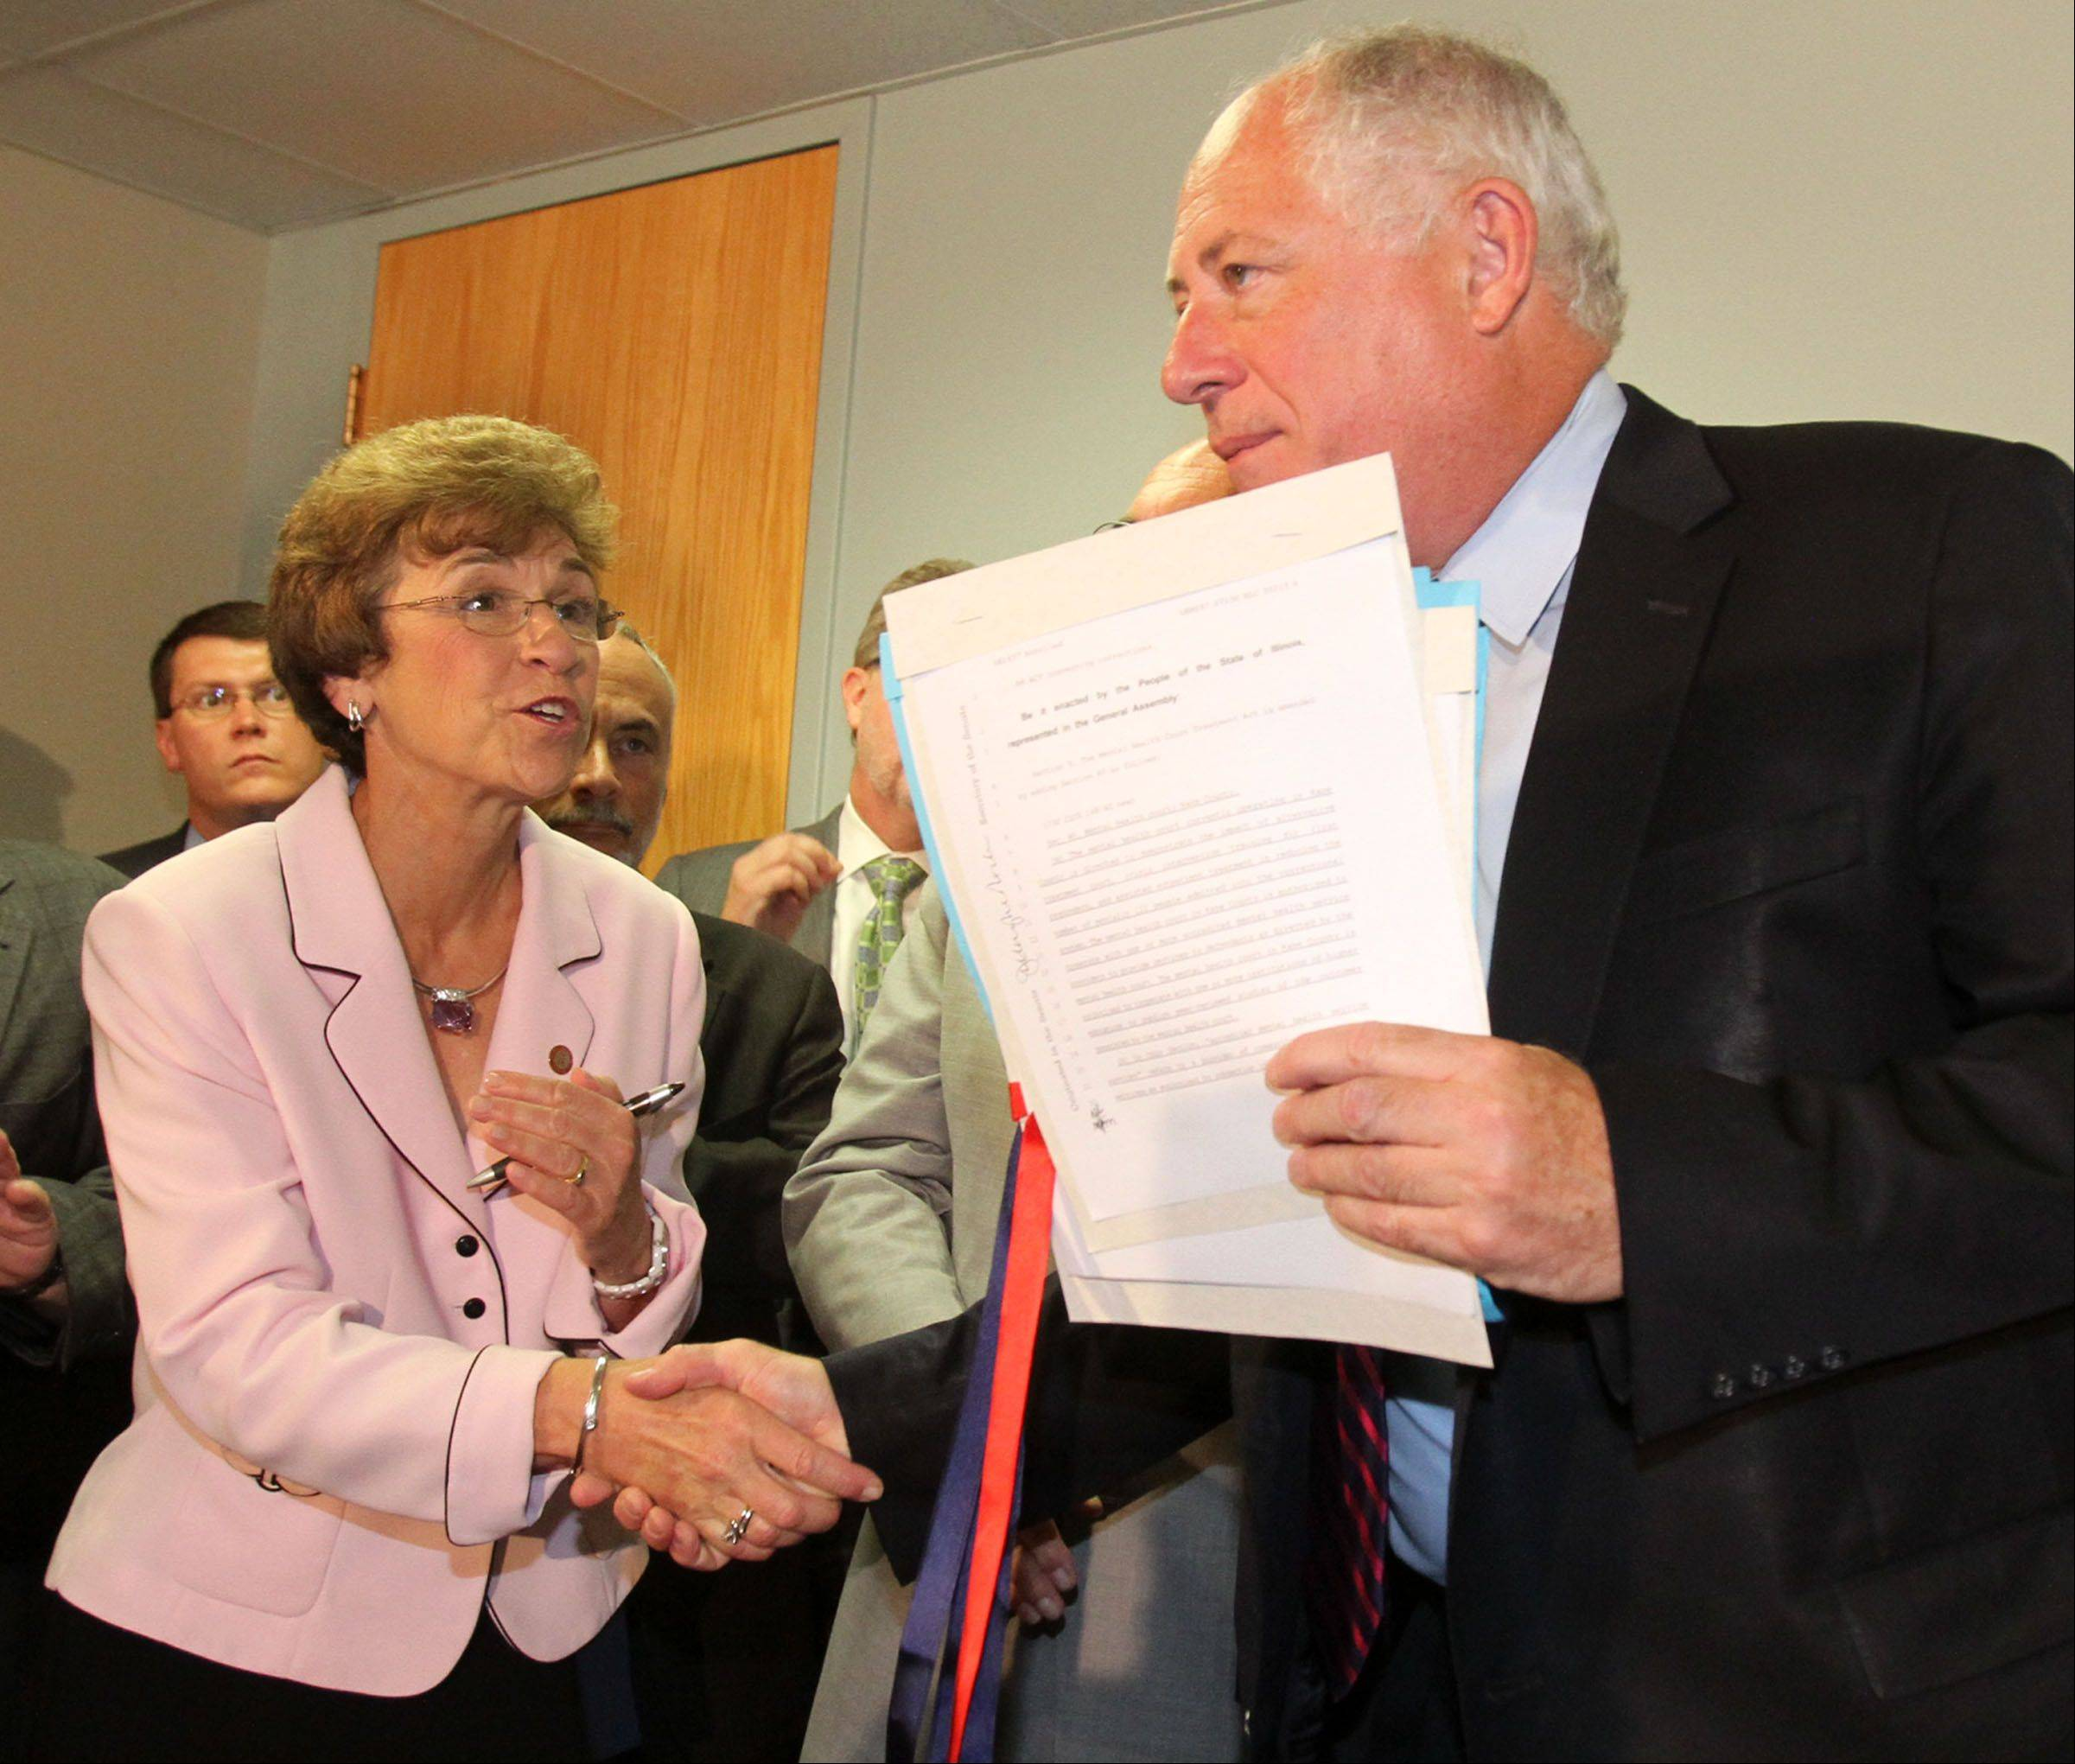 Arlington Heights Village President Arlene Mulder congratulates Gov. Pat Quinn Thursday after he signs new mental health legislation at Alexian Brothers Center for Mental Health in Arlington Heights. The legislation creates a task force to study how to improve access to mental health services.